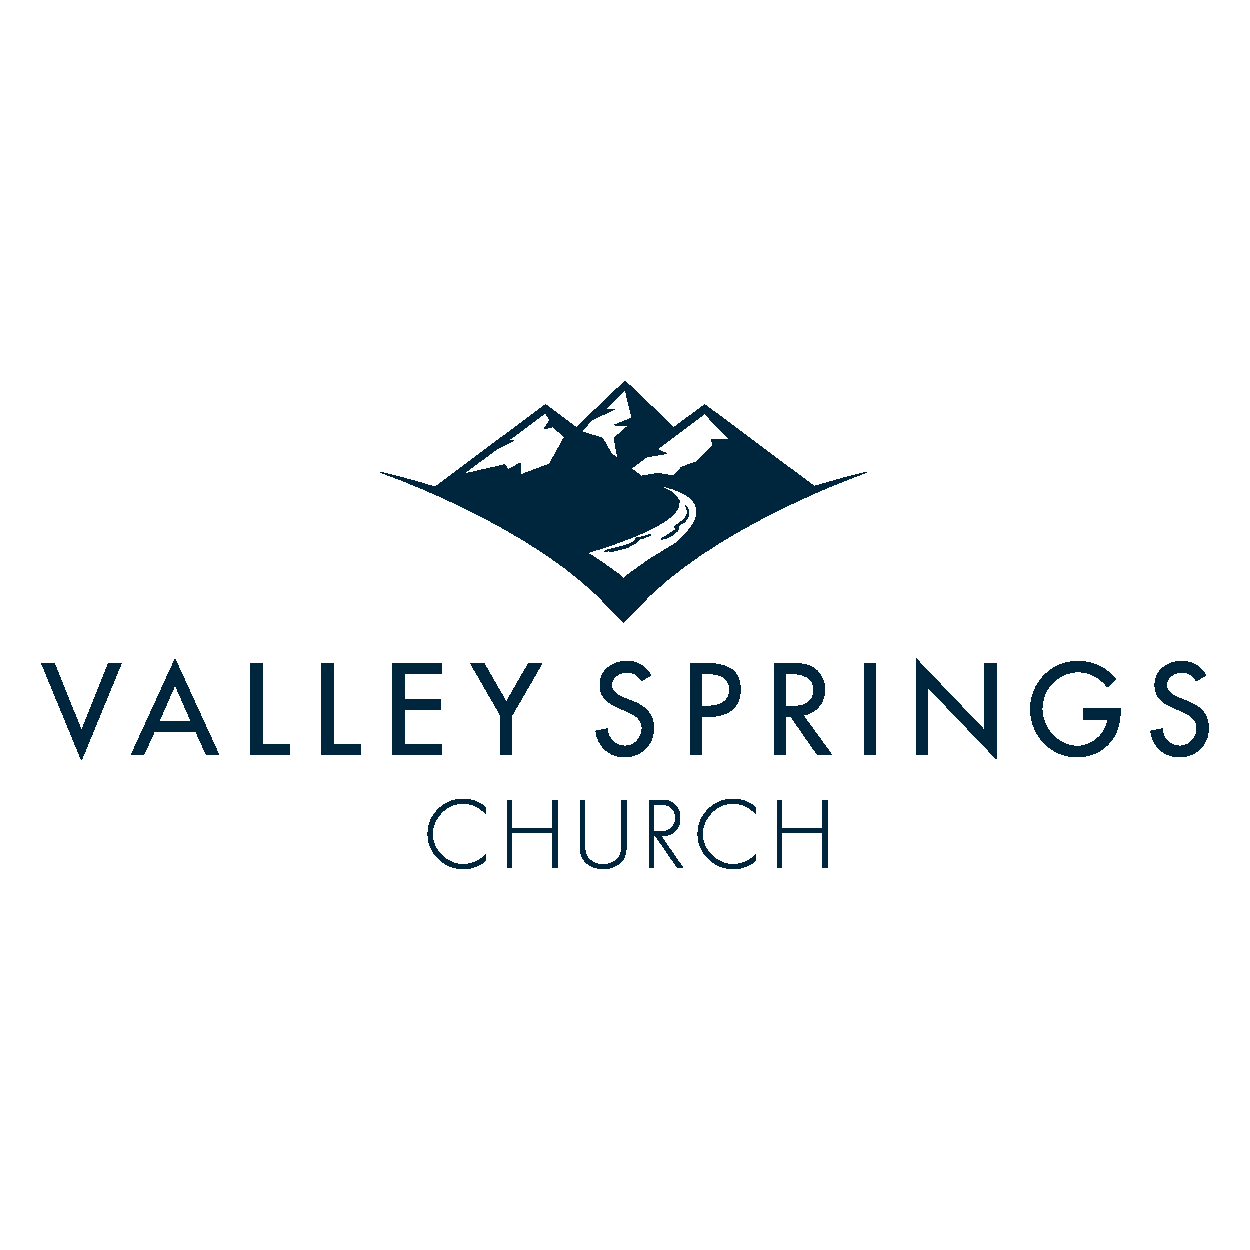 Valley Springs Church